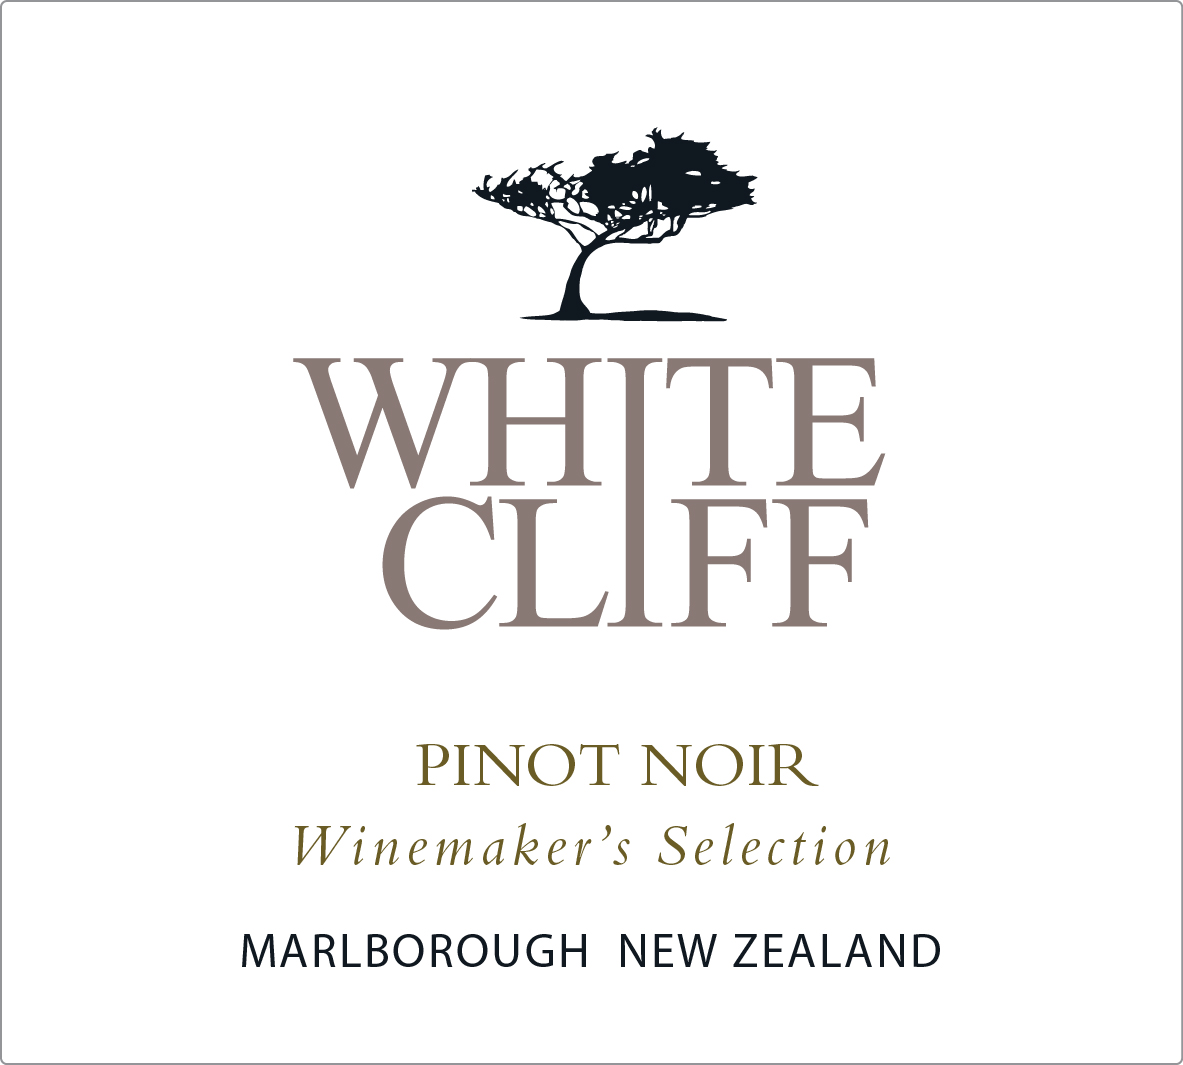 Aromas plum spices and sweet red cherry notes on the nose.   This Pinot Noir has a lovely ripe berry fruit palate with a soft mouth feel and supple structure.